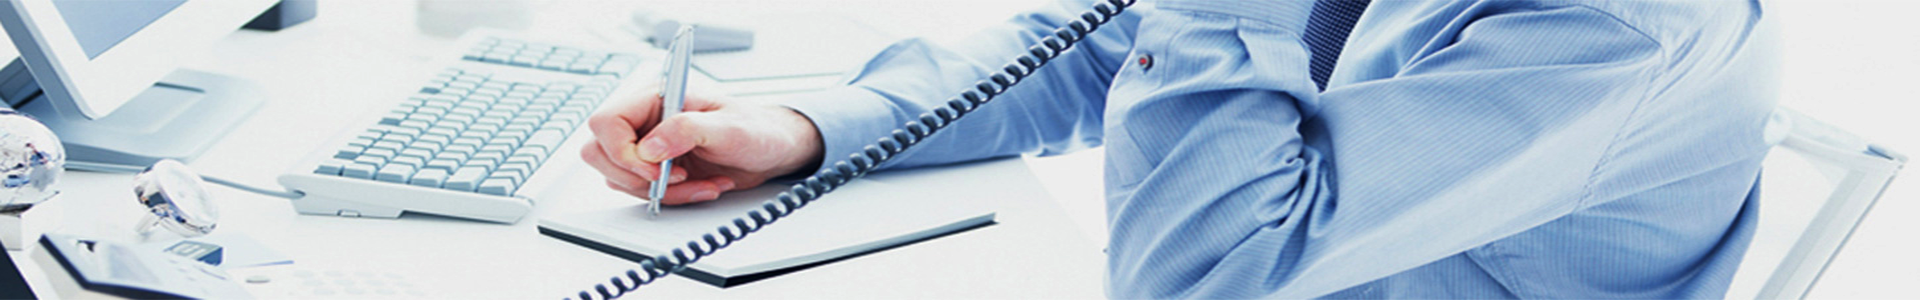 contact_banner_1920x300